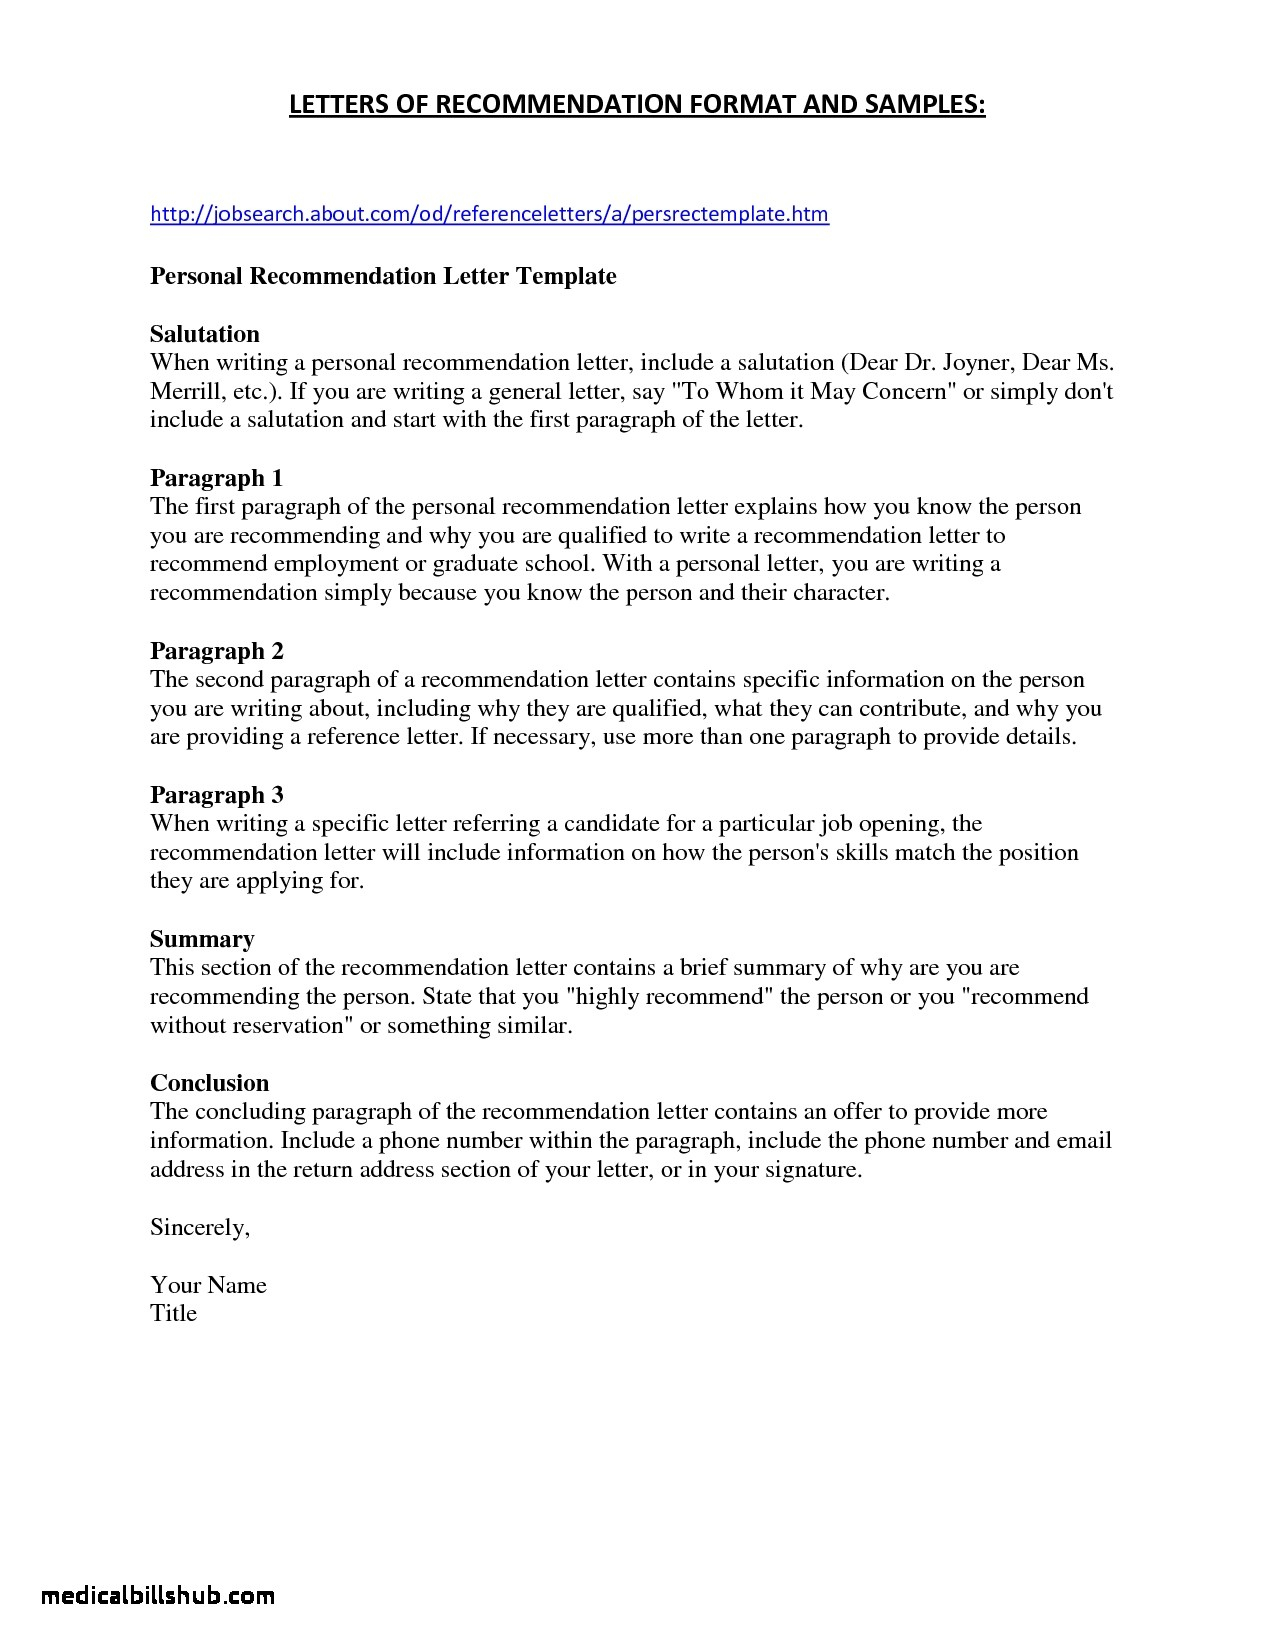 nursing school recommendation letter template example-Sample Re mendation Letter for Job New Letter Re Mendation for Nursing School associates Degree In 9-a